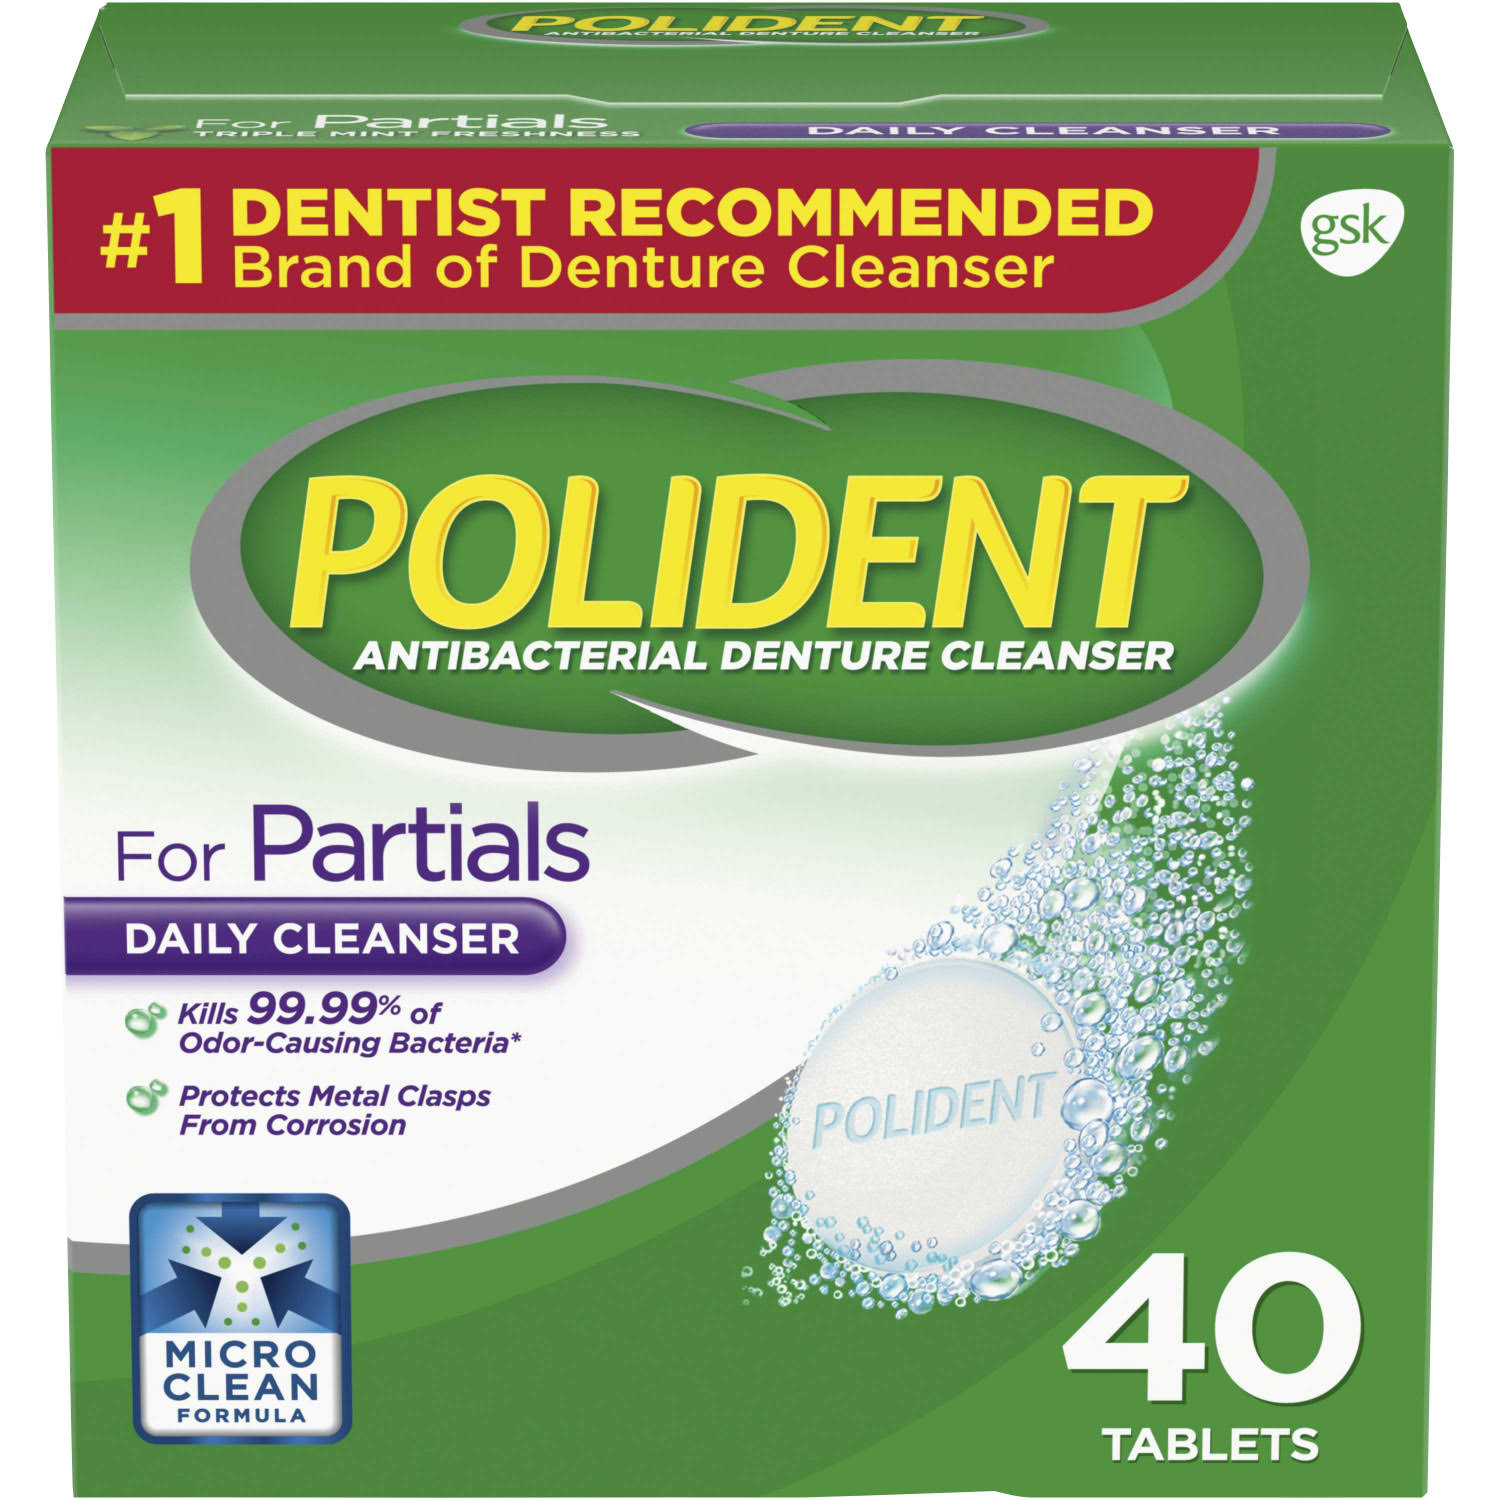 Polident Antibacterial Denture Cleanser - 40 Tablets